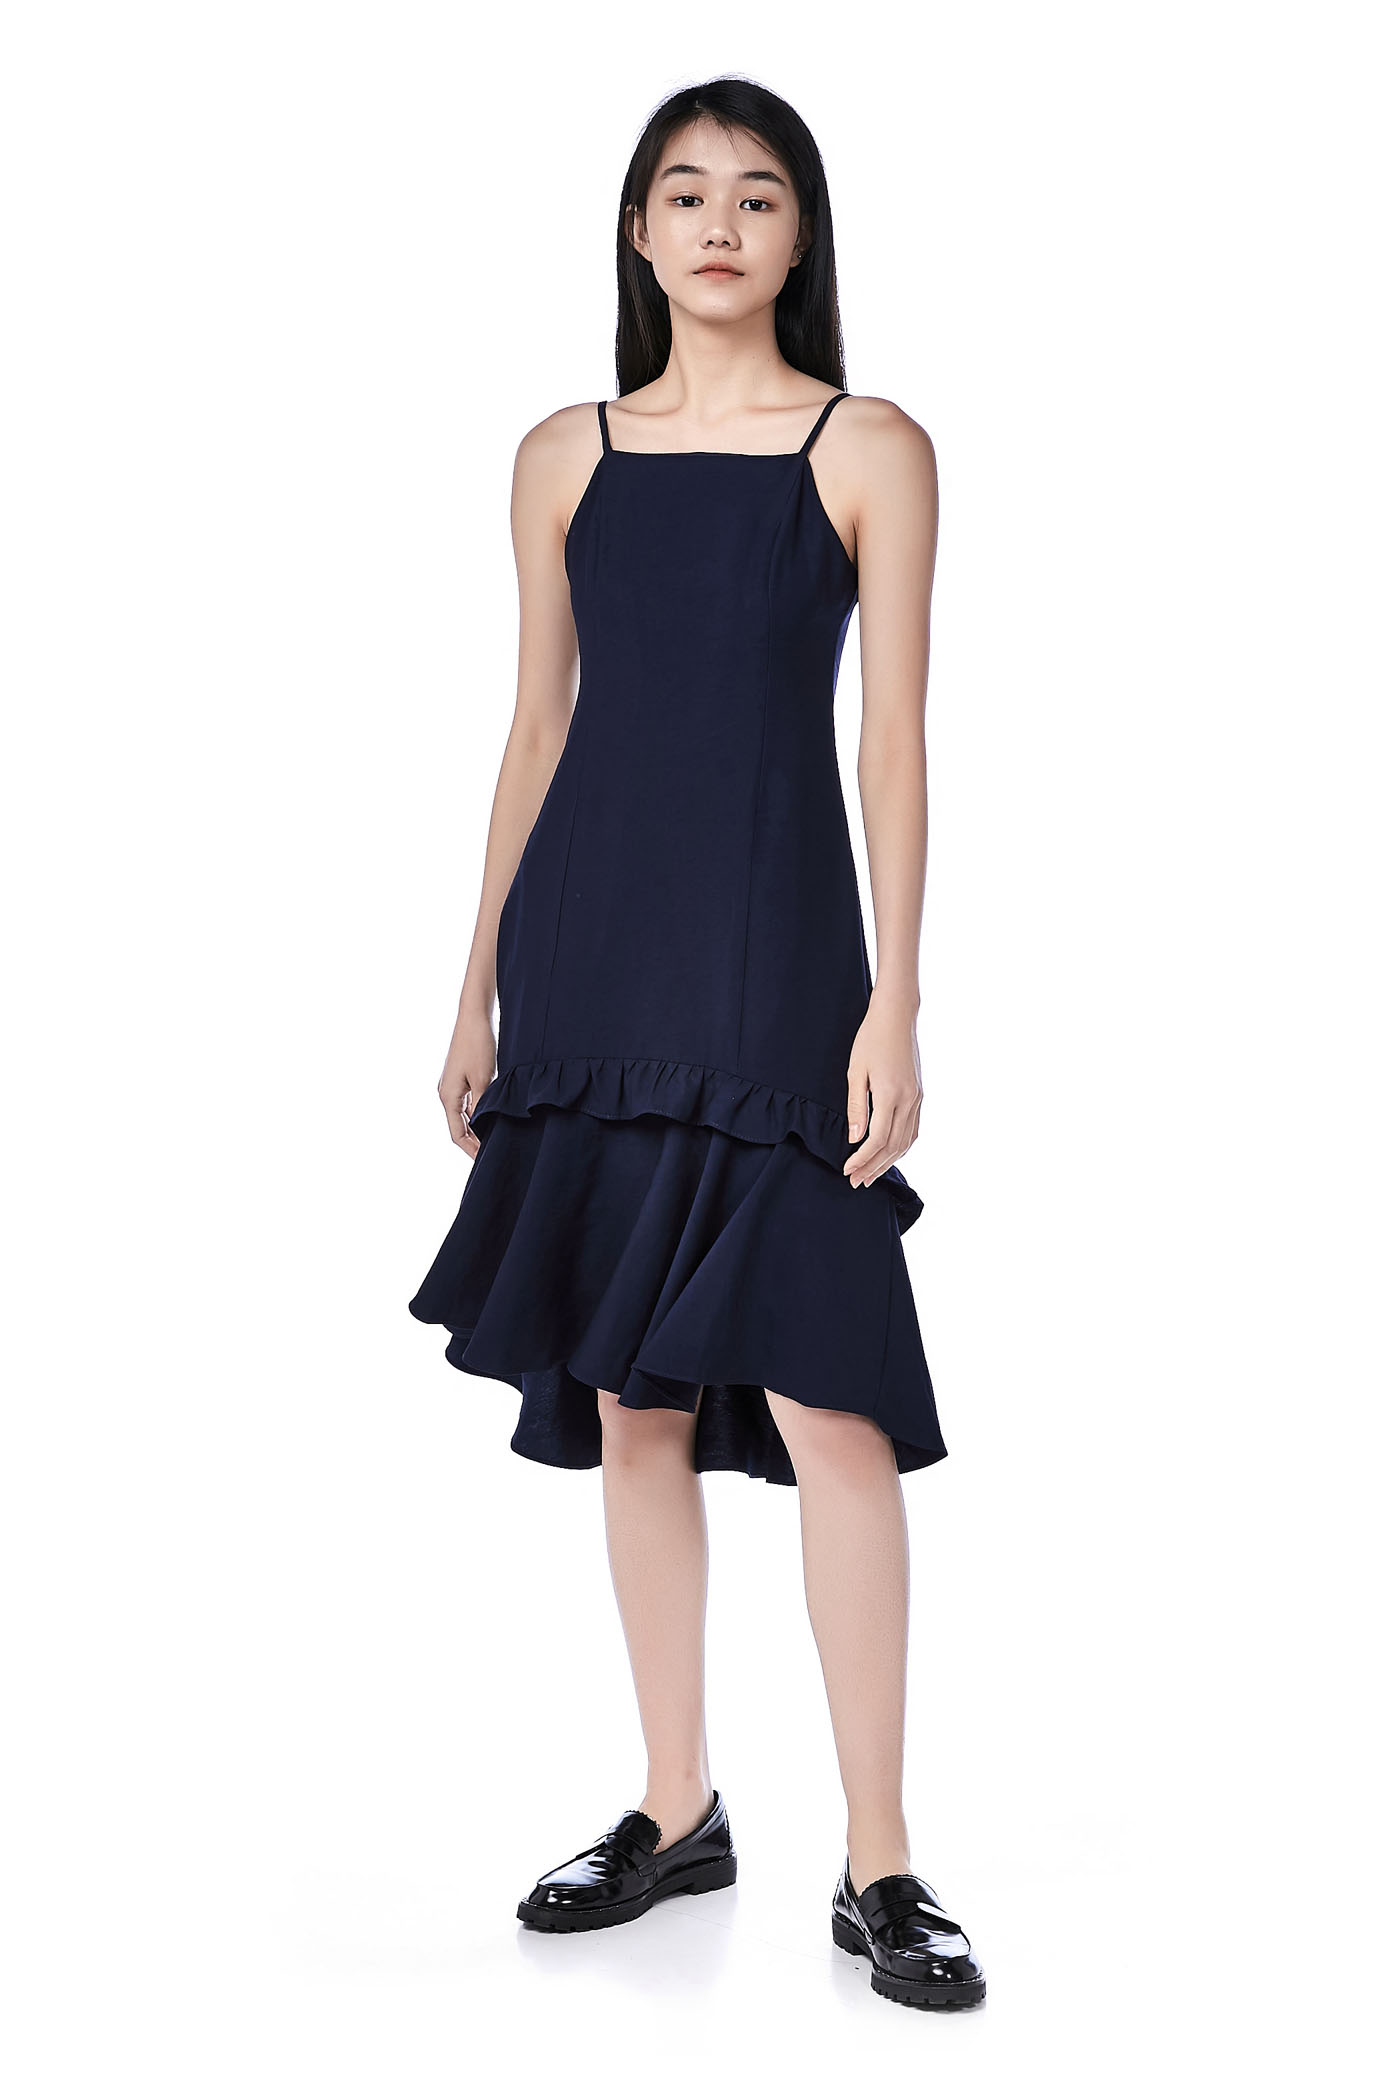 Lamour Ruffle-Hem Dress